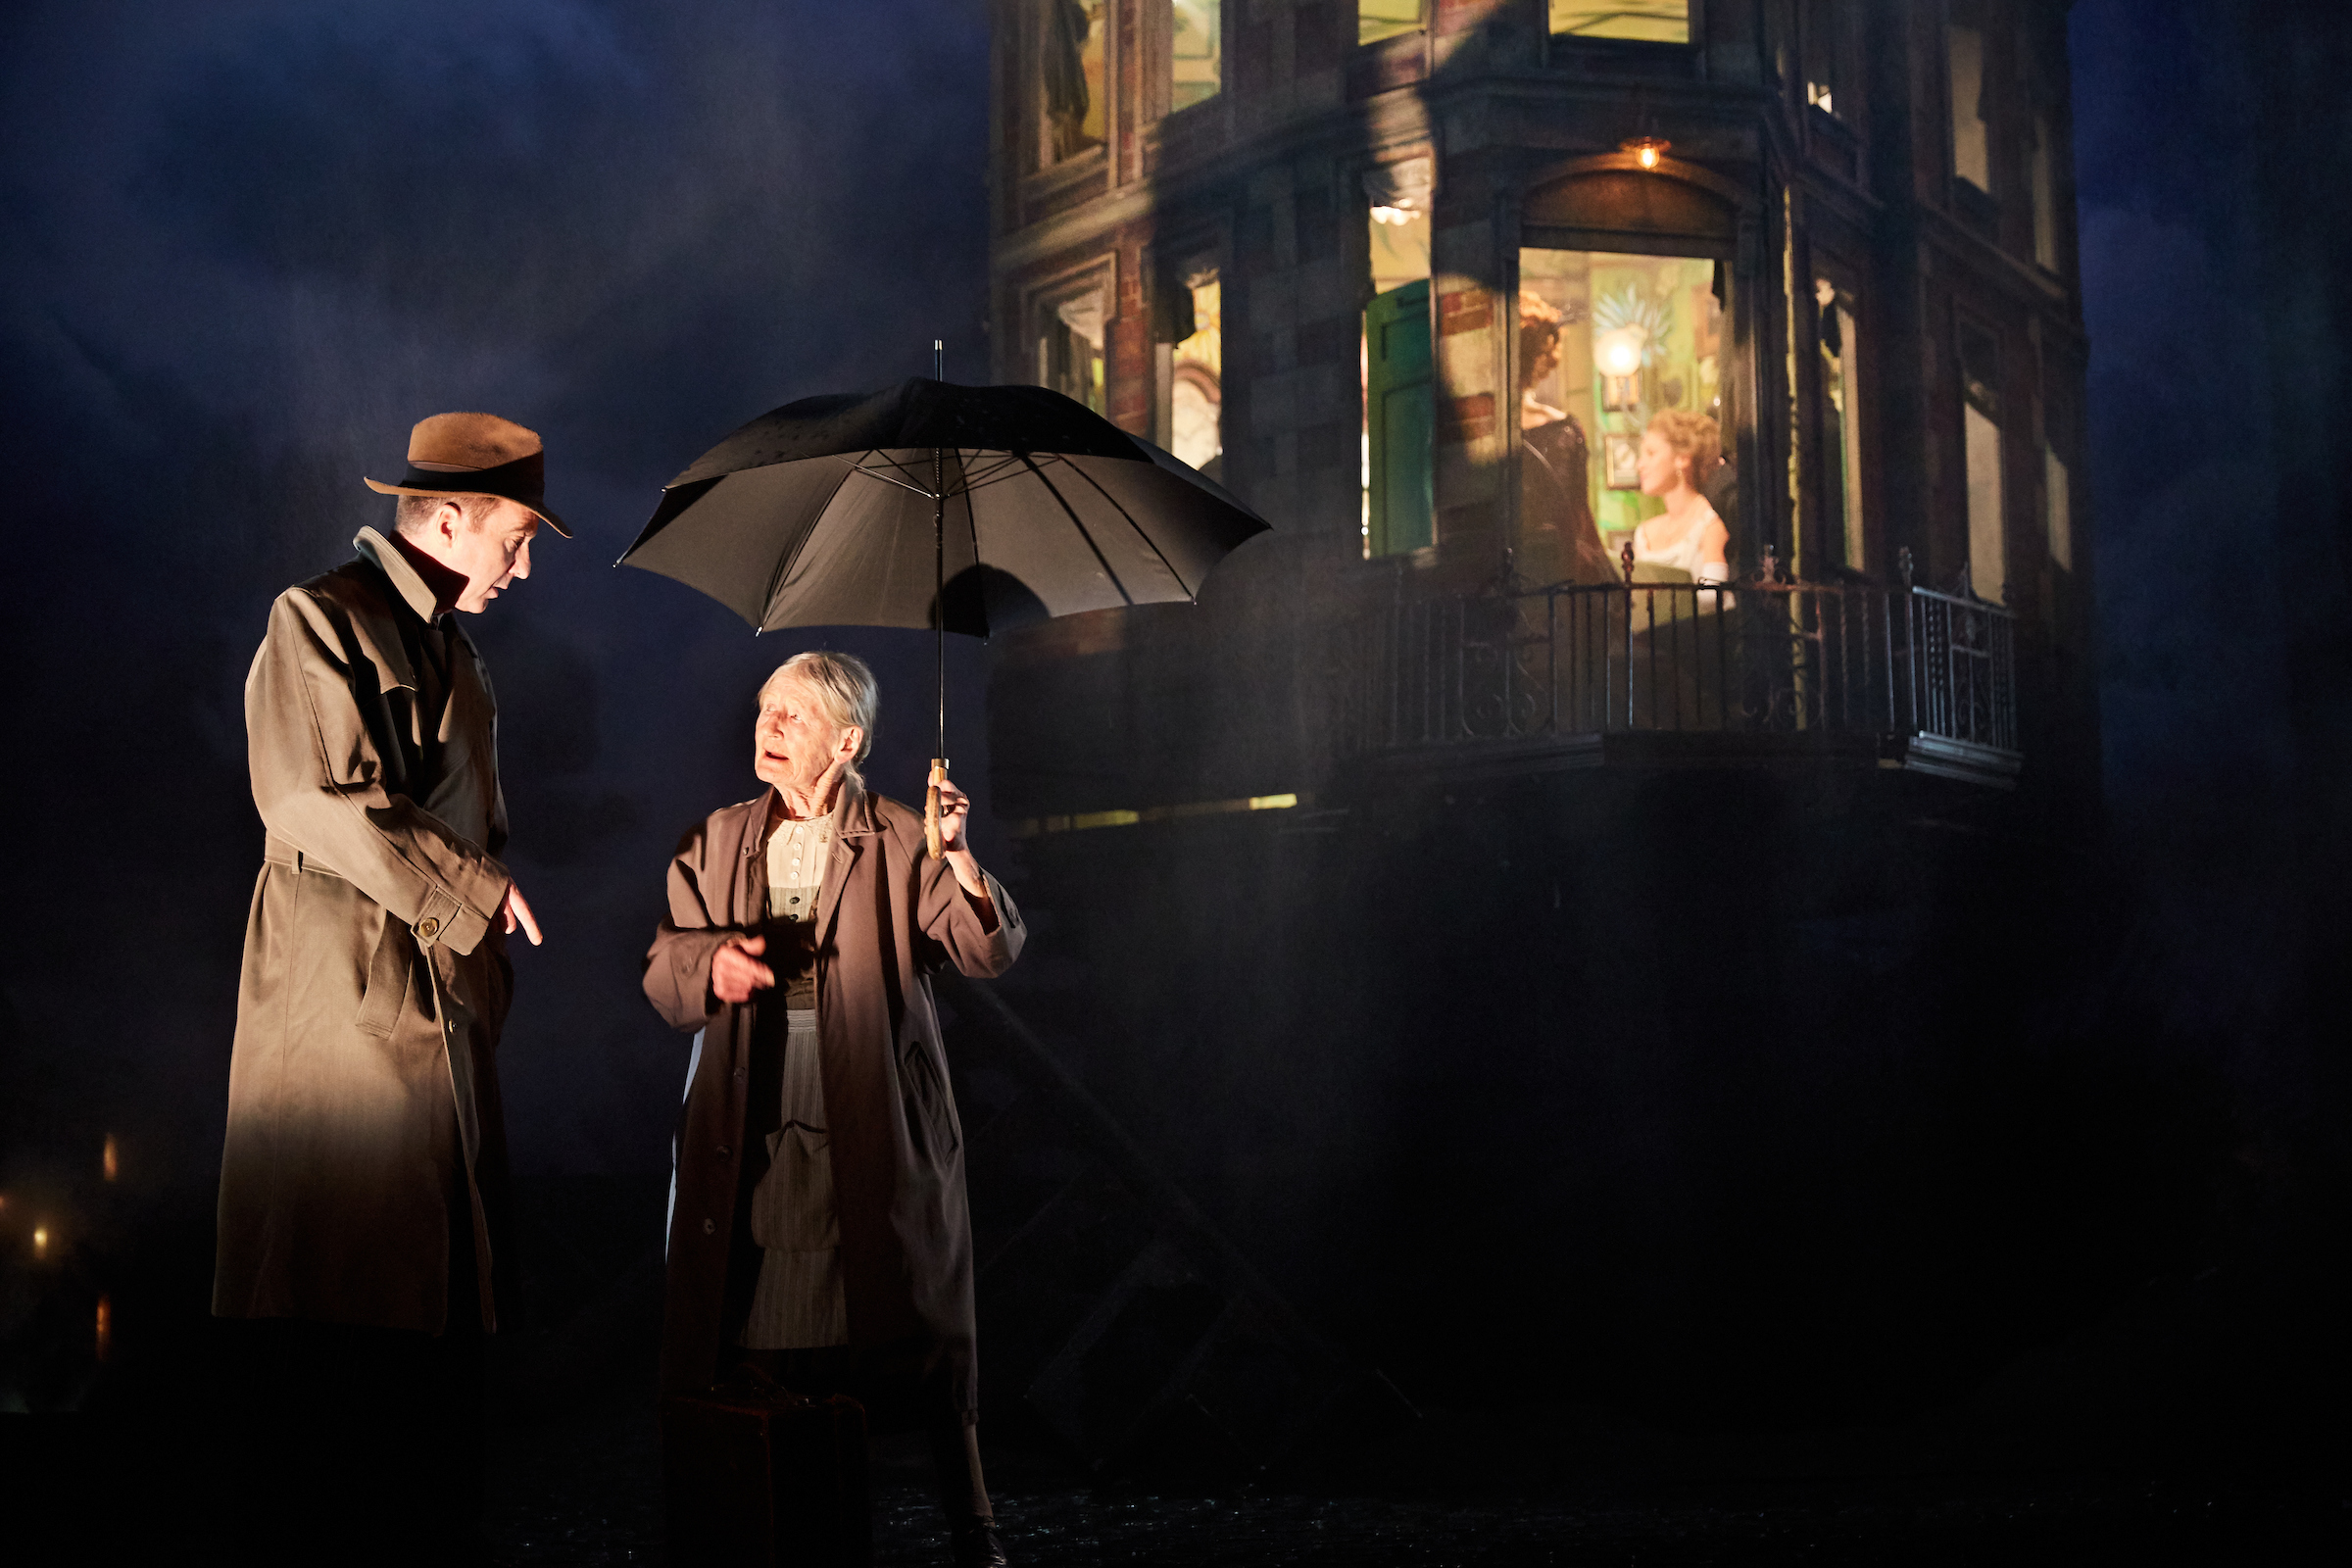 an-inspector-calls-at-the-playhouse-theatre-photo-by-mark-douet-_29